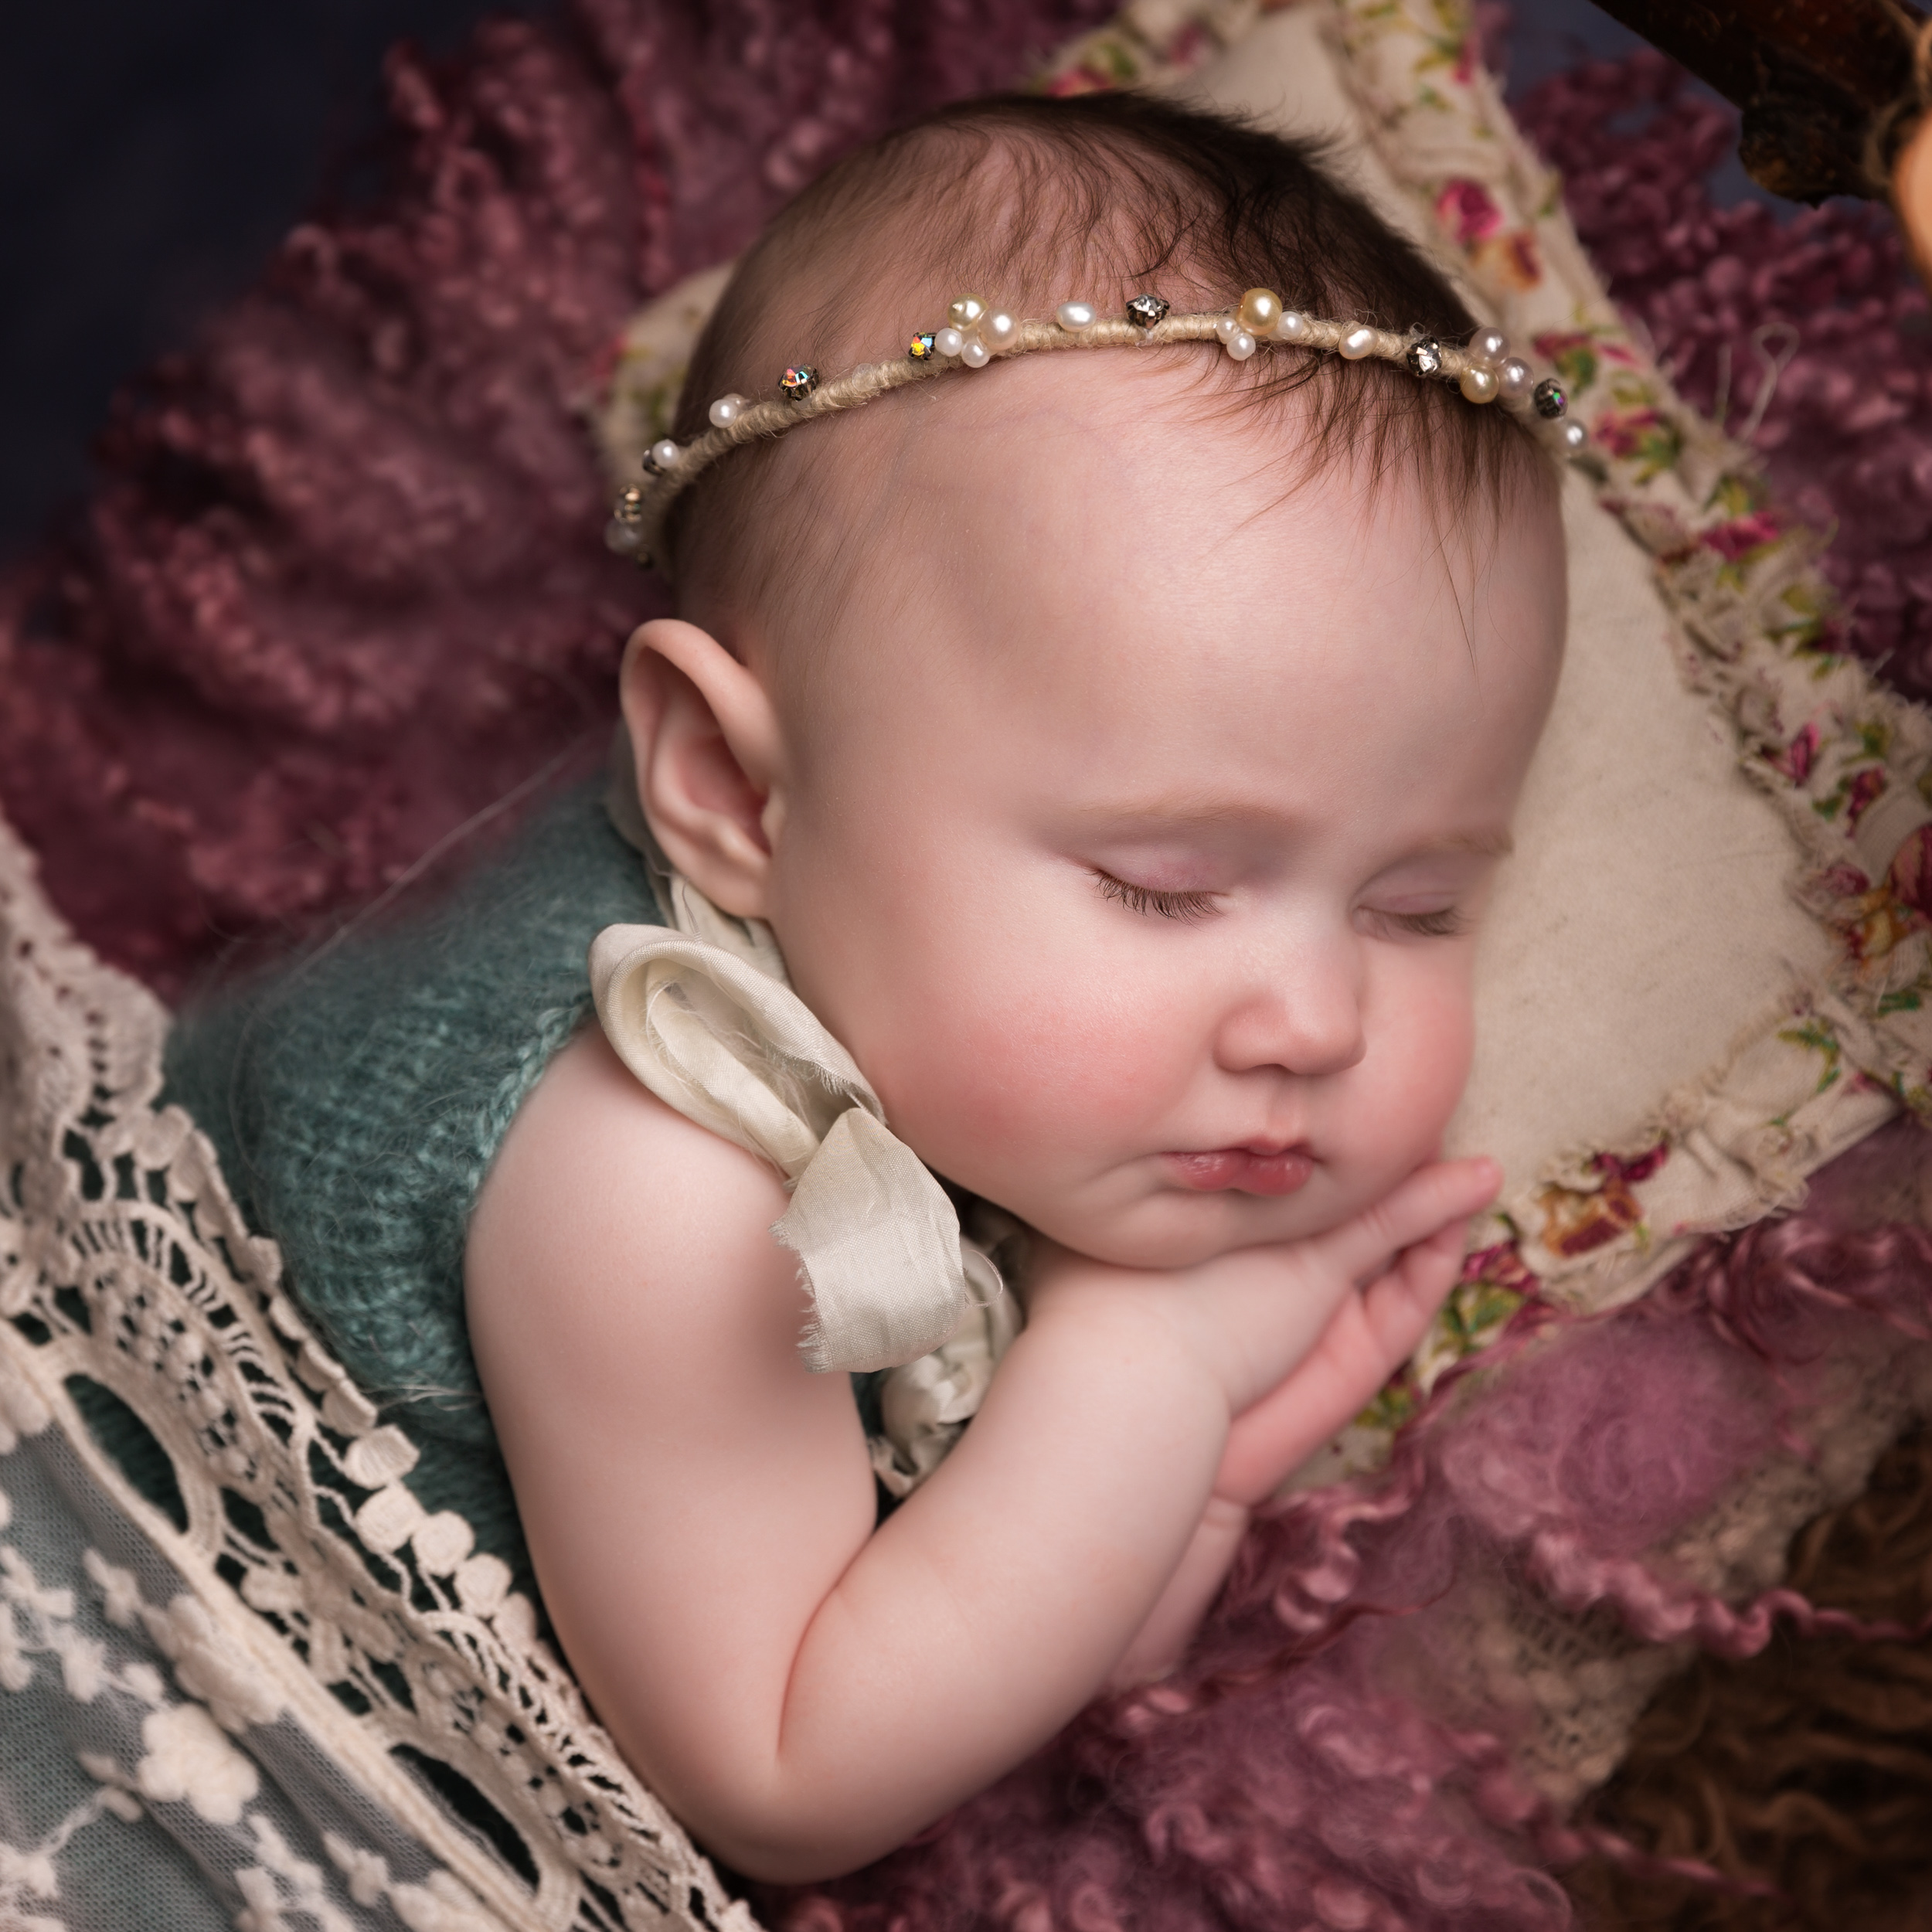 Sleeping beauty themed sitter session in Sandbach, Cheshire